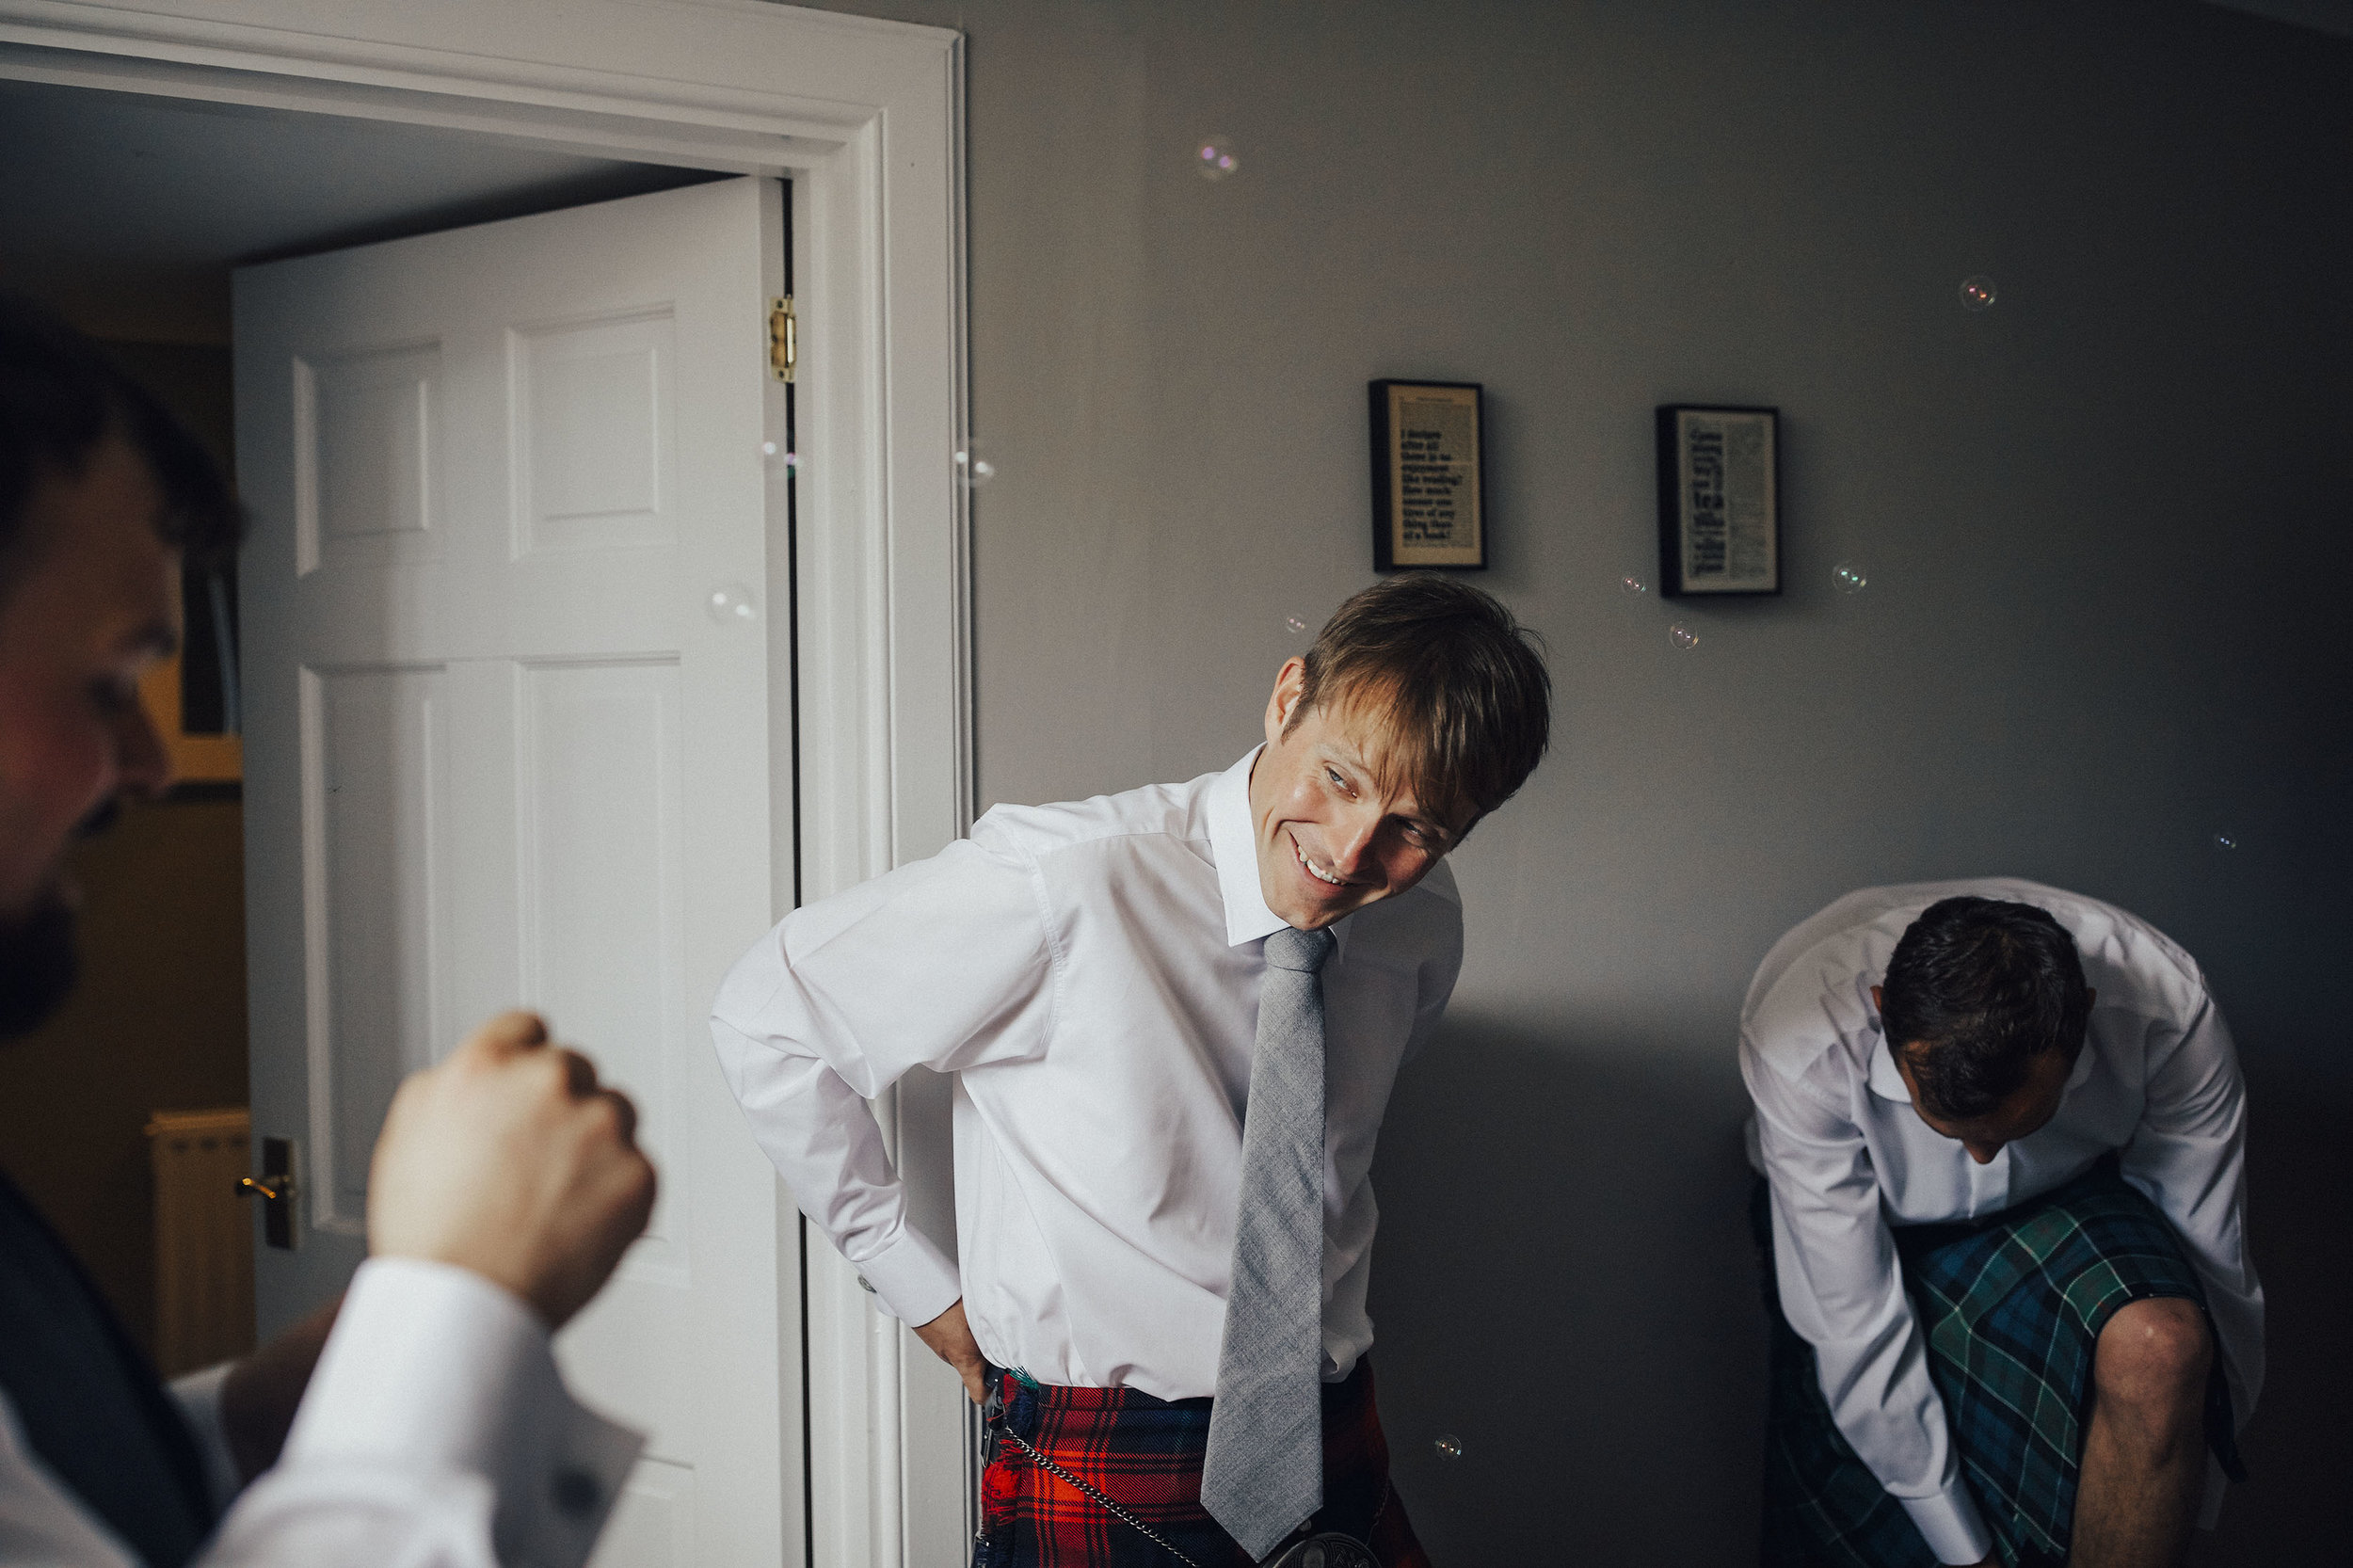 PJ_PHILLIPS_PHOTOGRAPHY_2018_SCOTLAND_WEDDING_PHOTOOGRAPHER_351.jpg